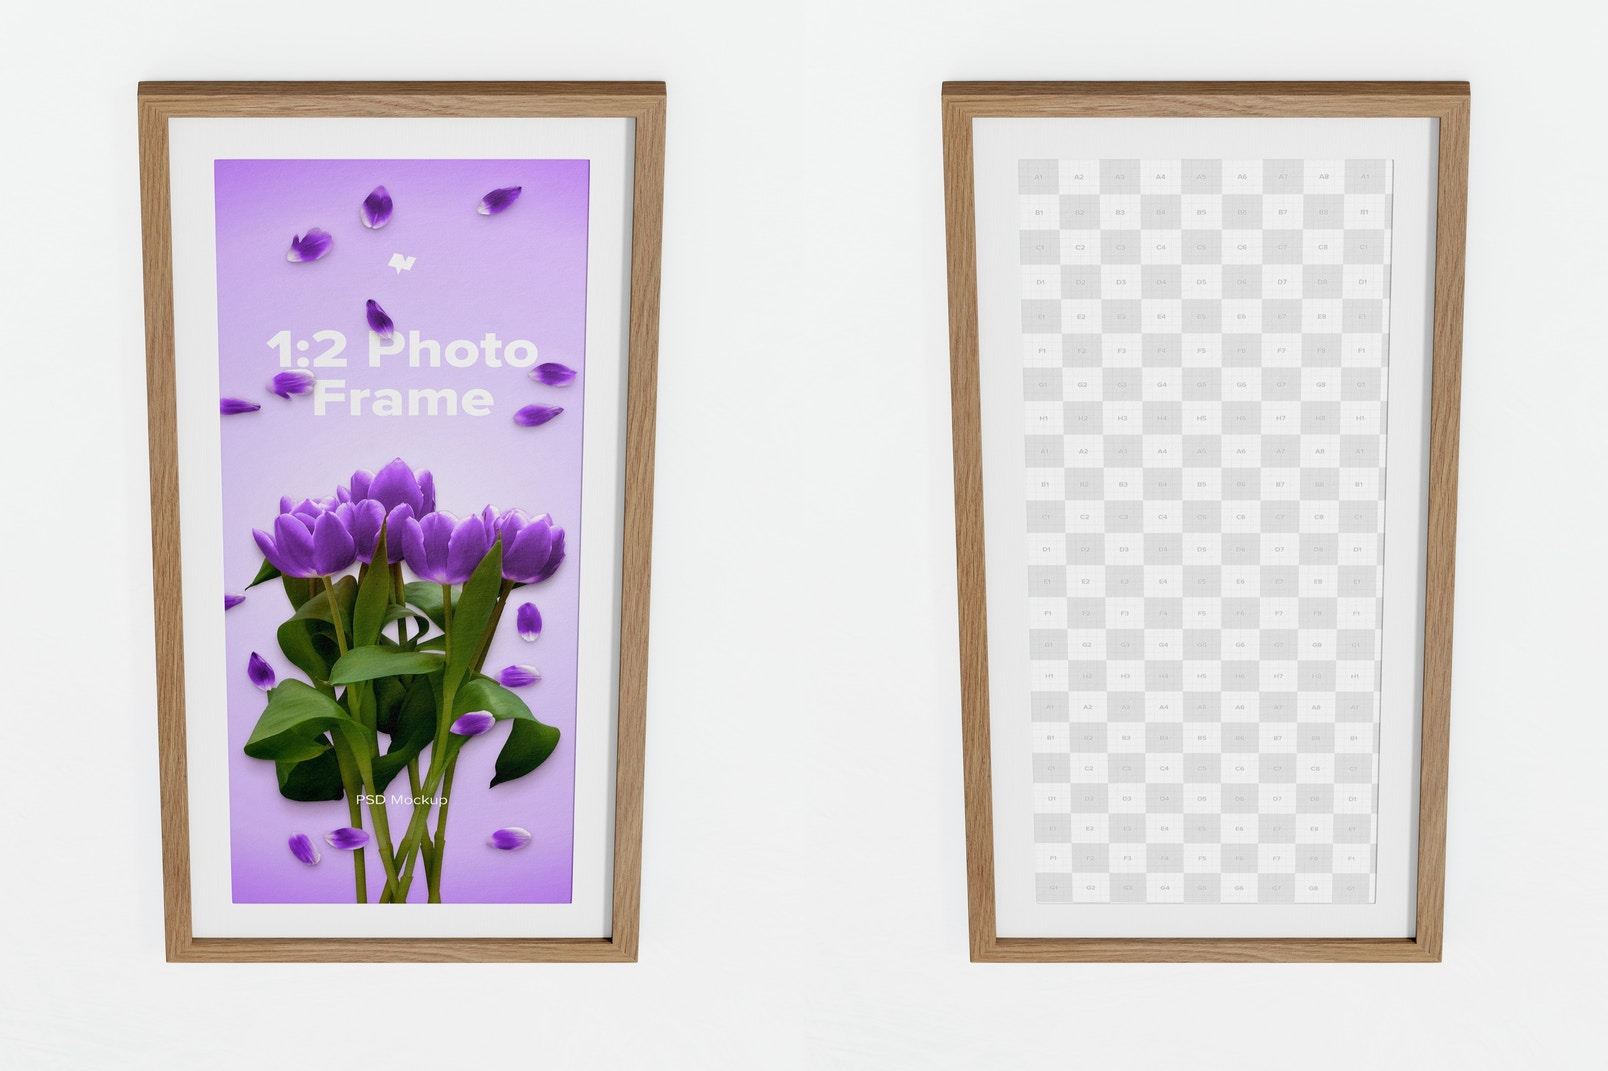 1:2 Photo Frame Mockup, Top Front View